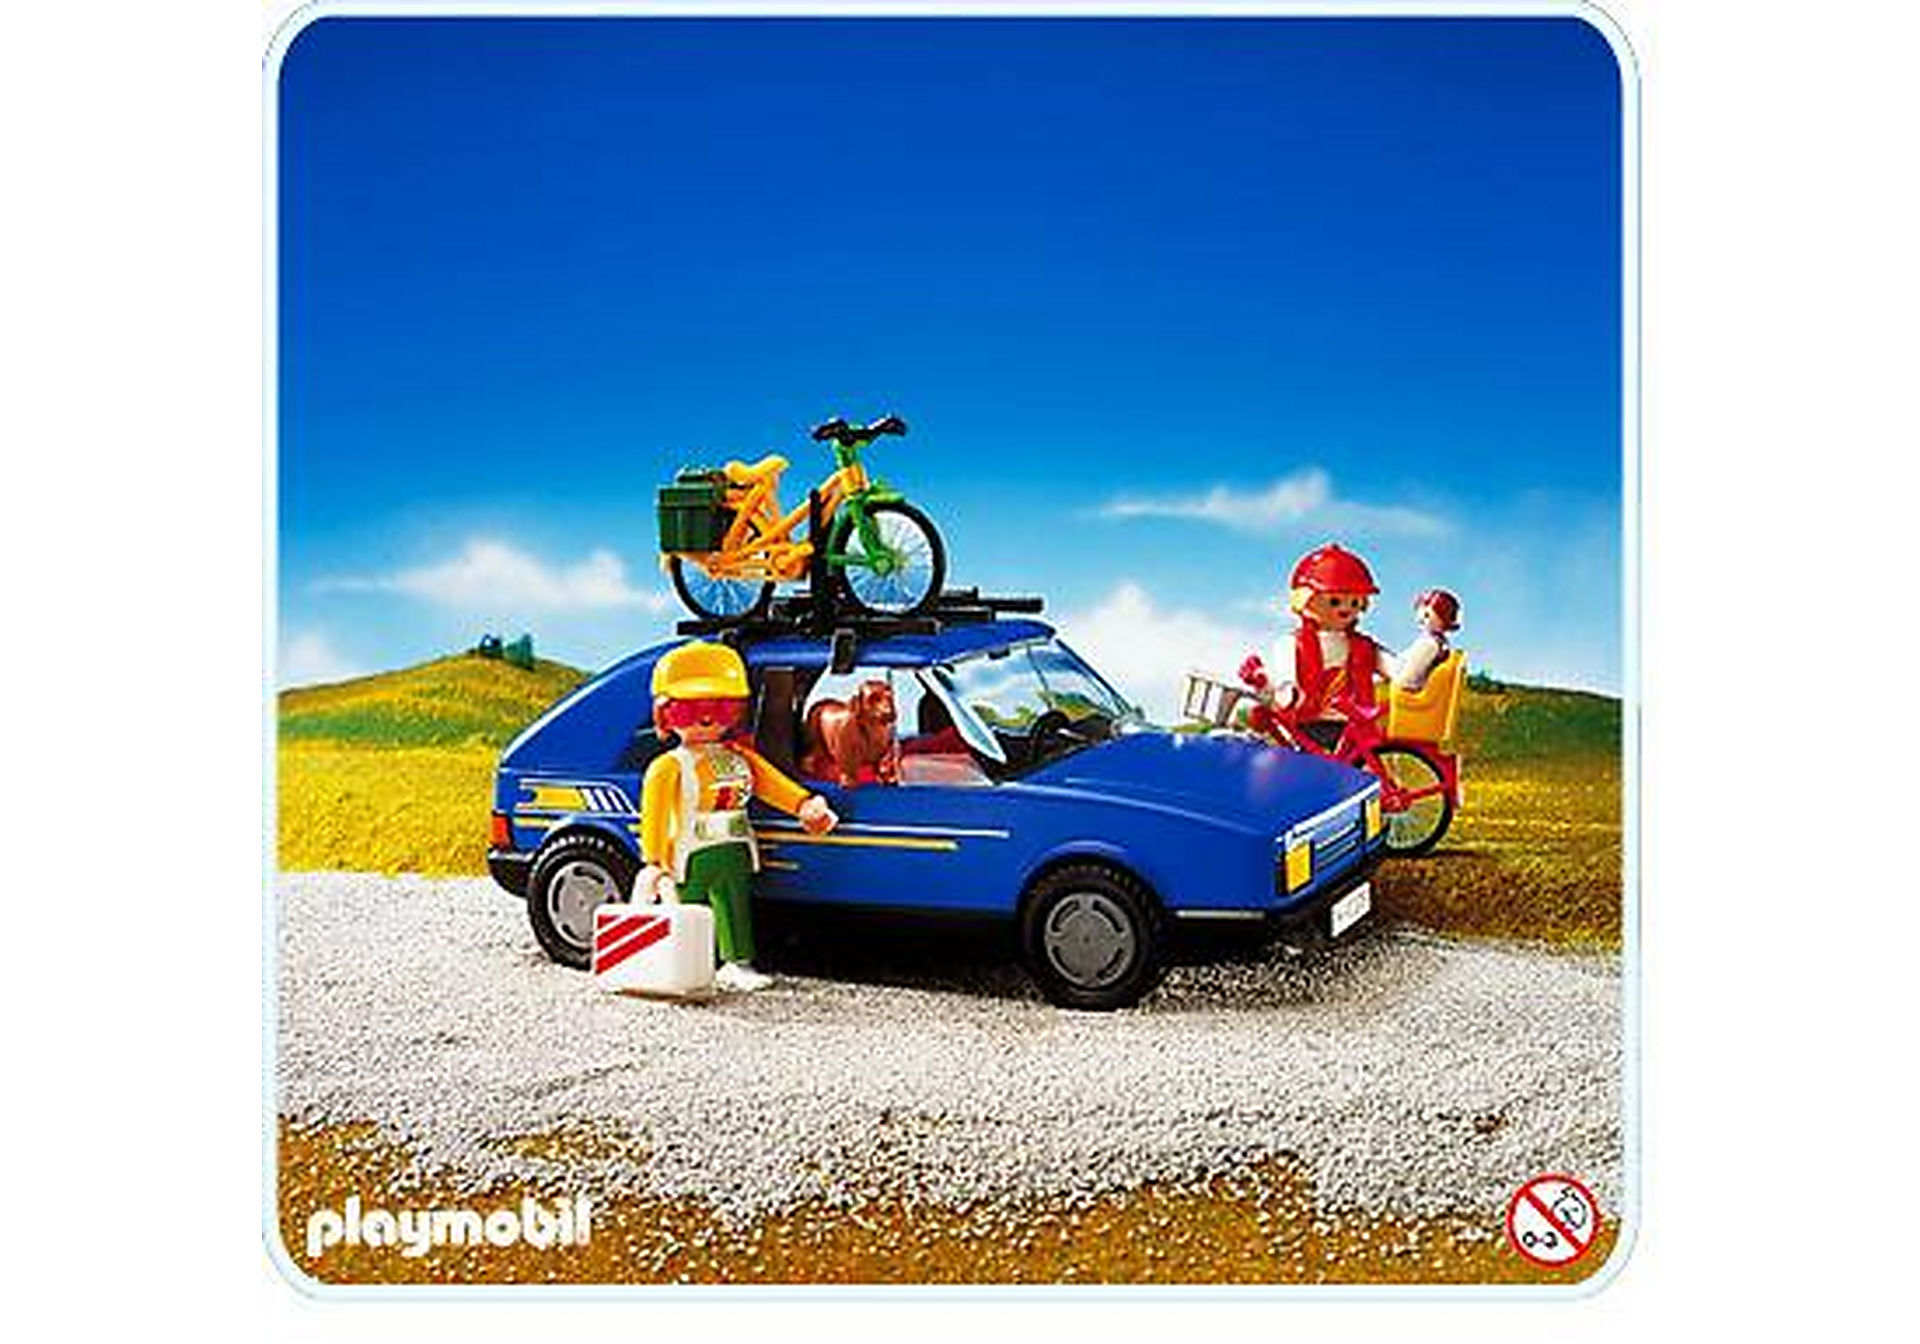 http://media.playmobil.com/i/playmobil/3739-A_product_detail/Voiture de tourisme / galerie